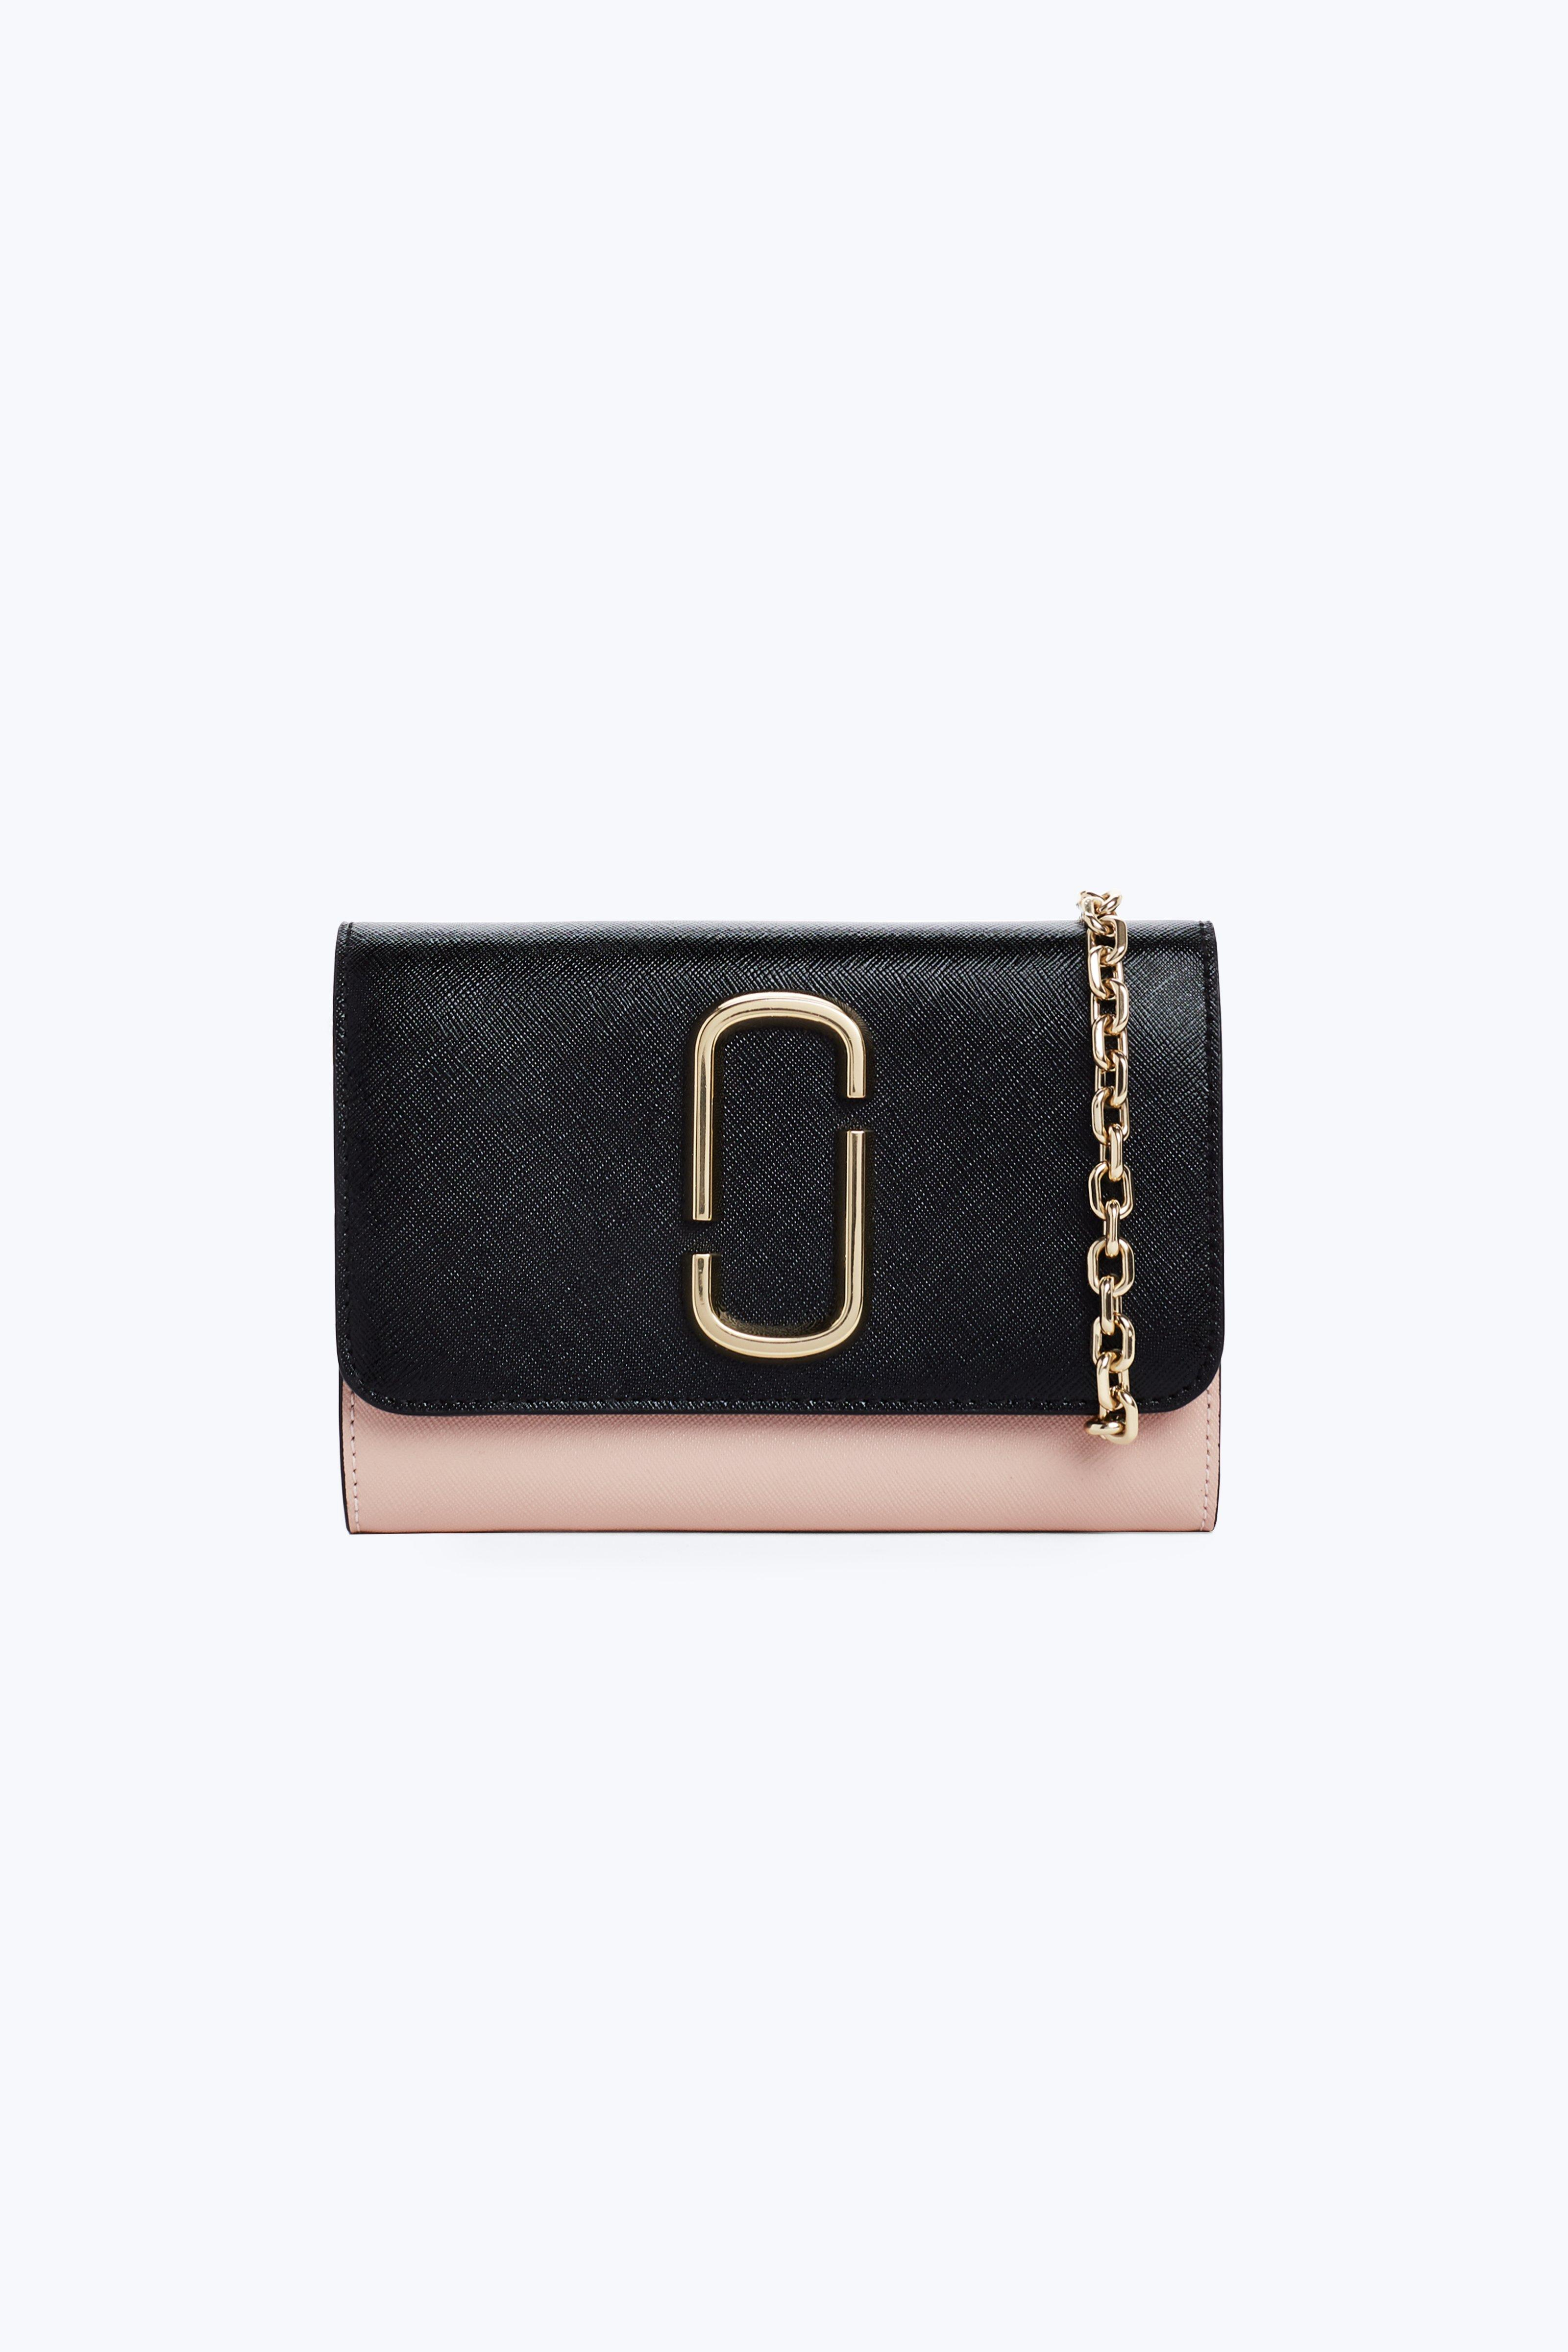 Wallet for Women On Sale, Black, Leather, 2017, One size Marc Jacobs